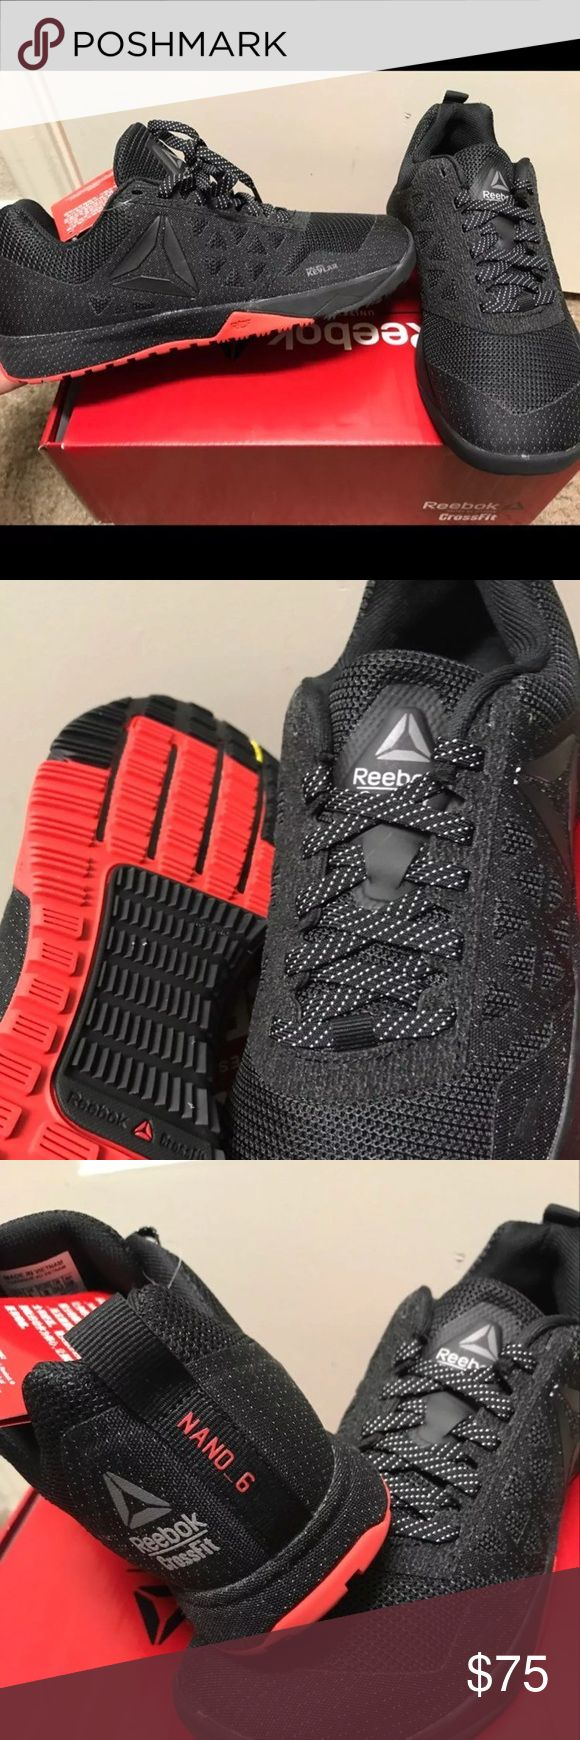 Reebok nano 6.0 size 7.5 women's Black and red new in box reebok nano 6.0 womens size 7.5 good for crossfit Reebok Shoes Lace Up Boots